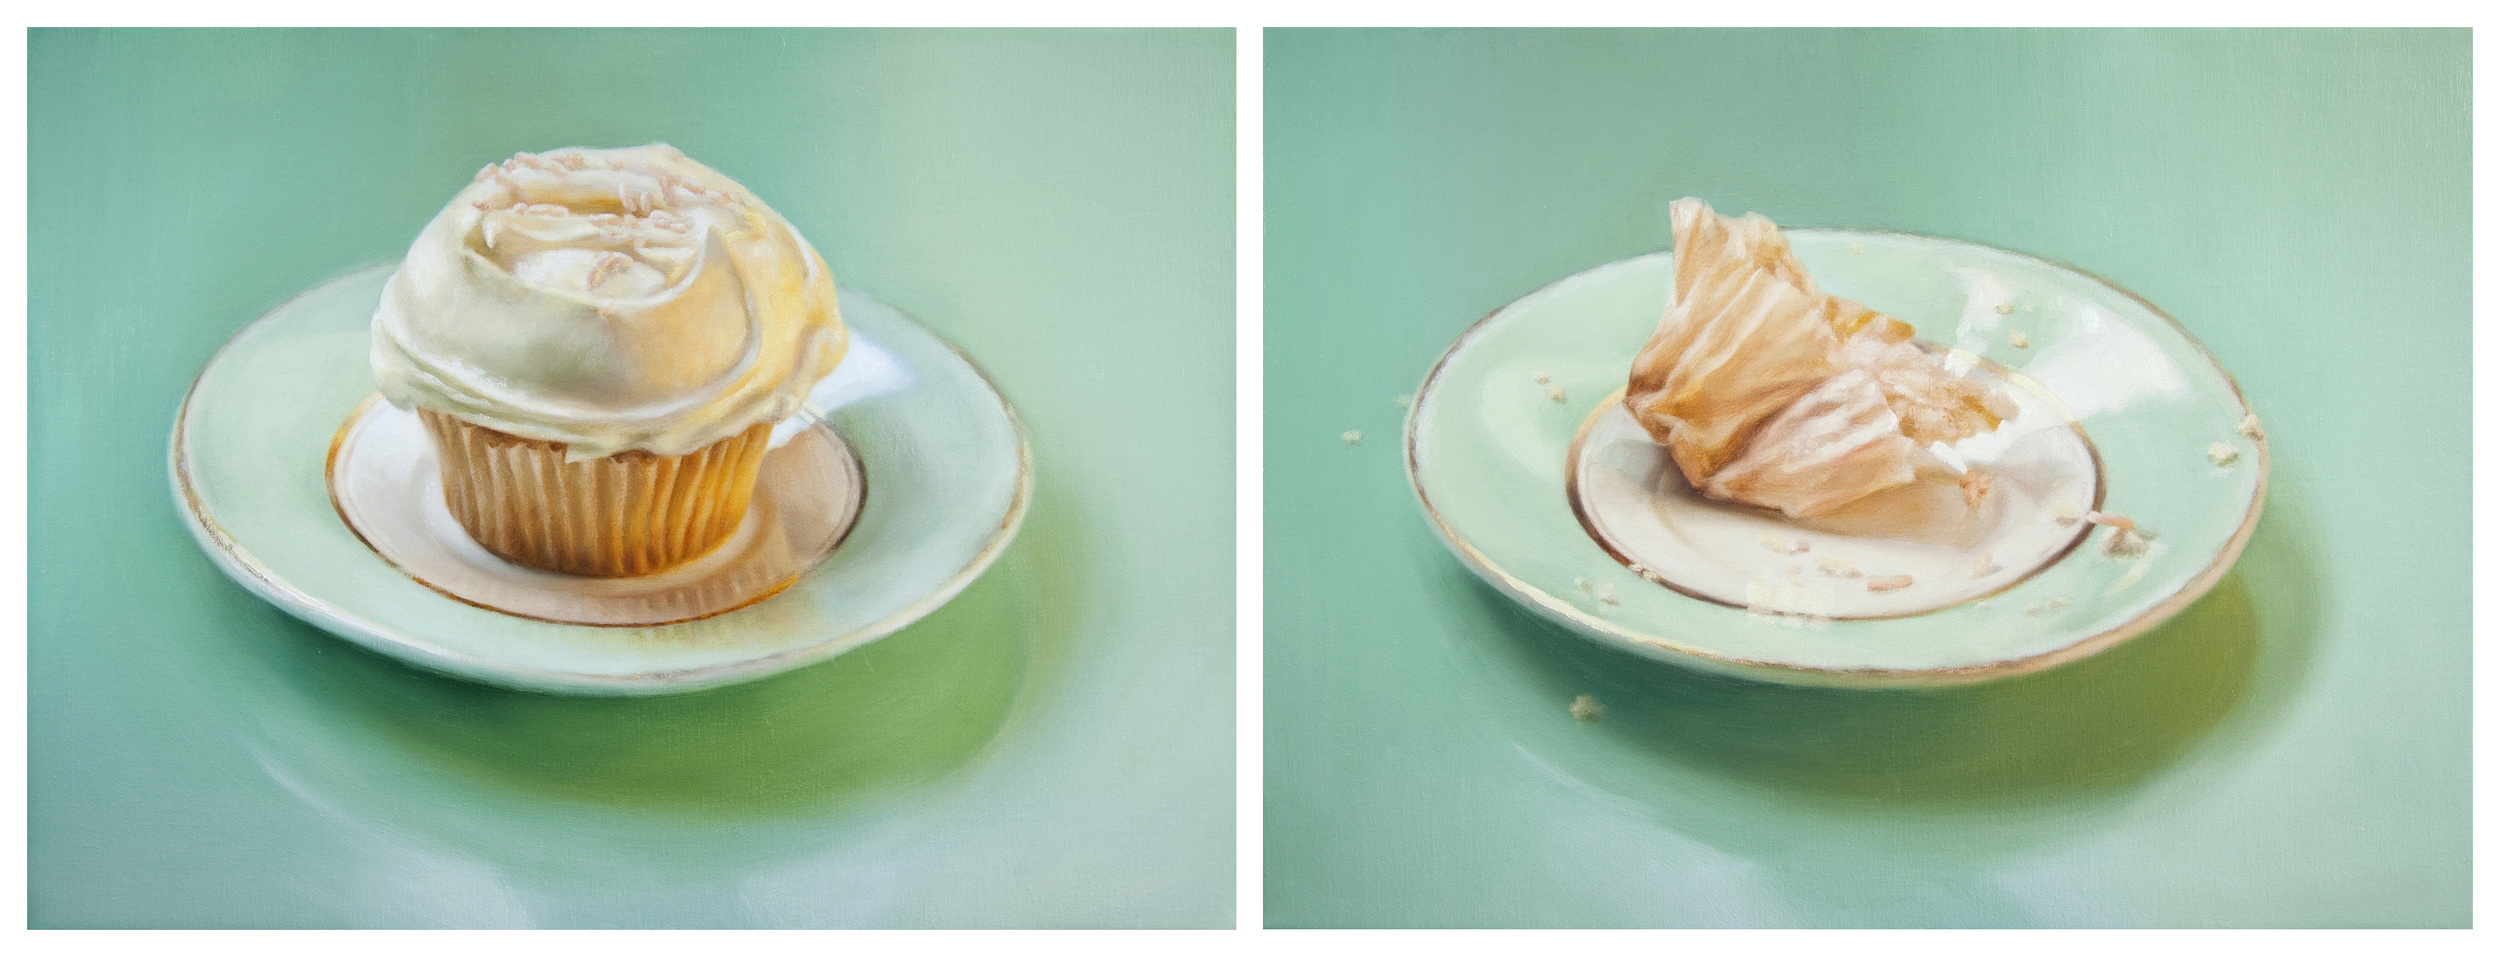 """Dyptich -  LEFT: Temptation  12"""" x 16""""  Oil on Linen  RIGHT: Tempted 12"""" x 16""""  Oil on Linen  SOLD"""